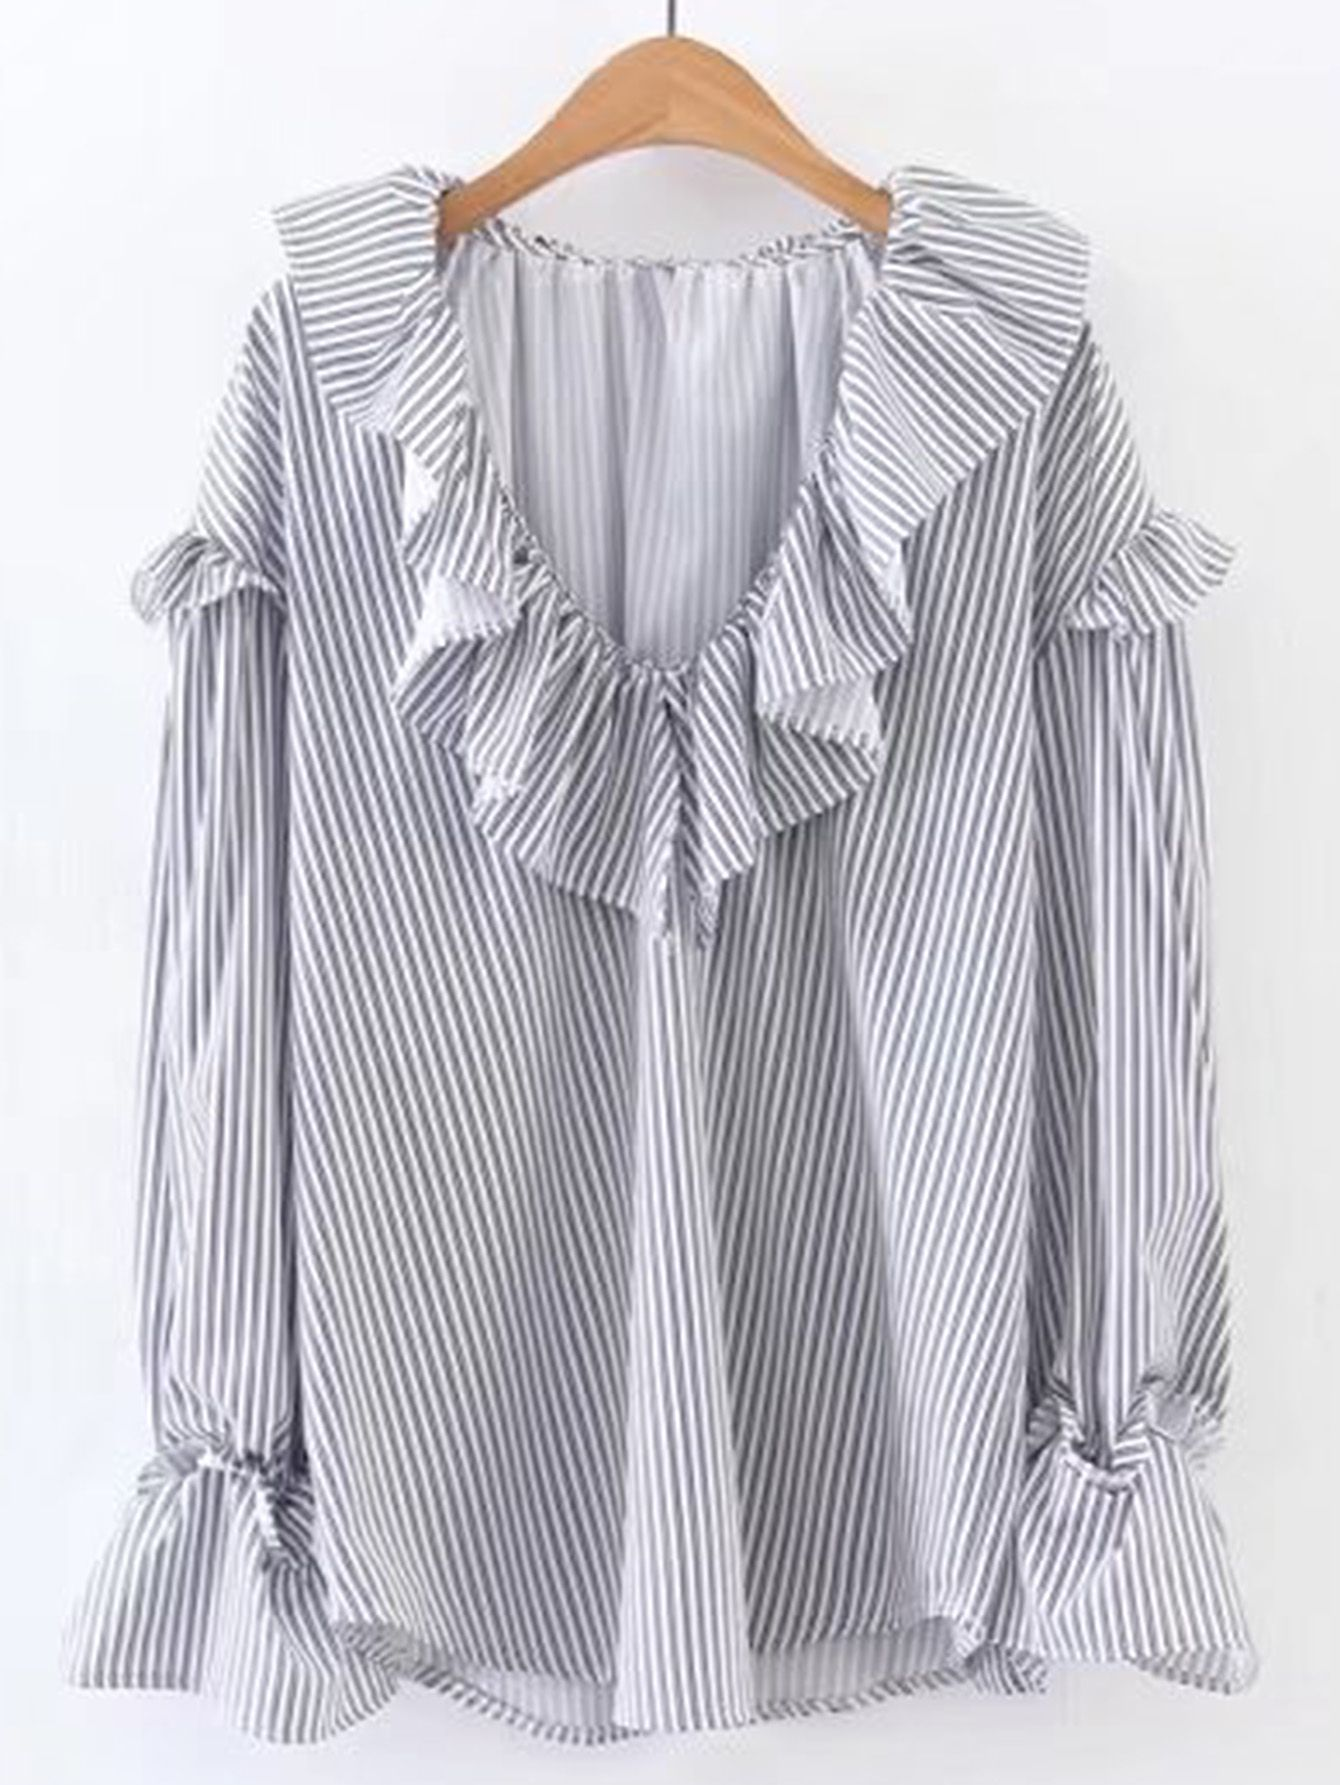 Shop V Neckline Ruffle Trim Blouse Online Shein Offers Azkia Tunic More To Fit Your Fashionable Needs